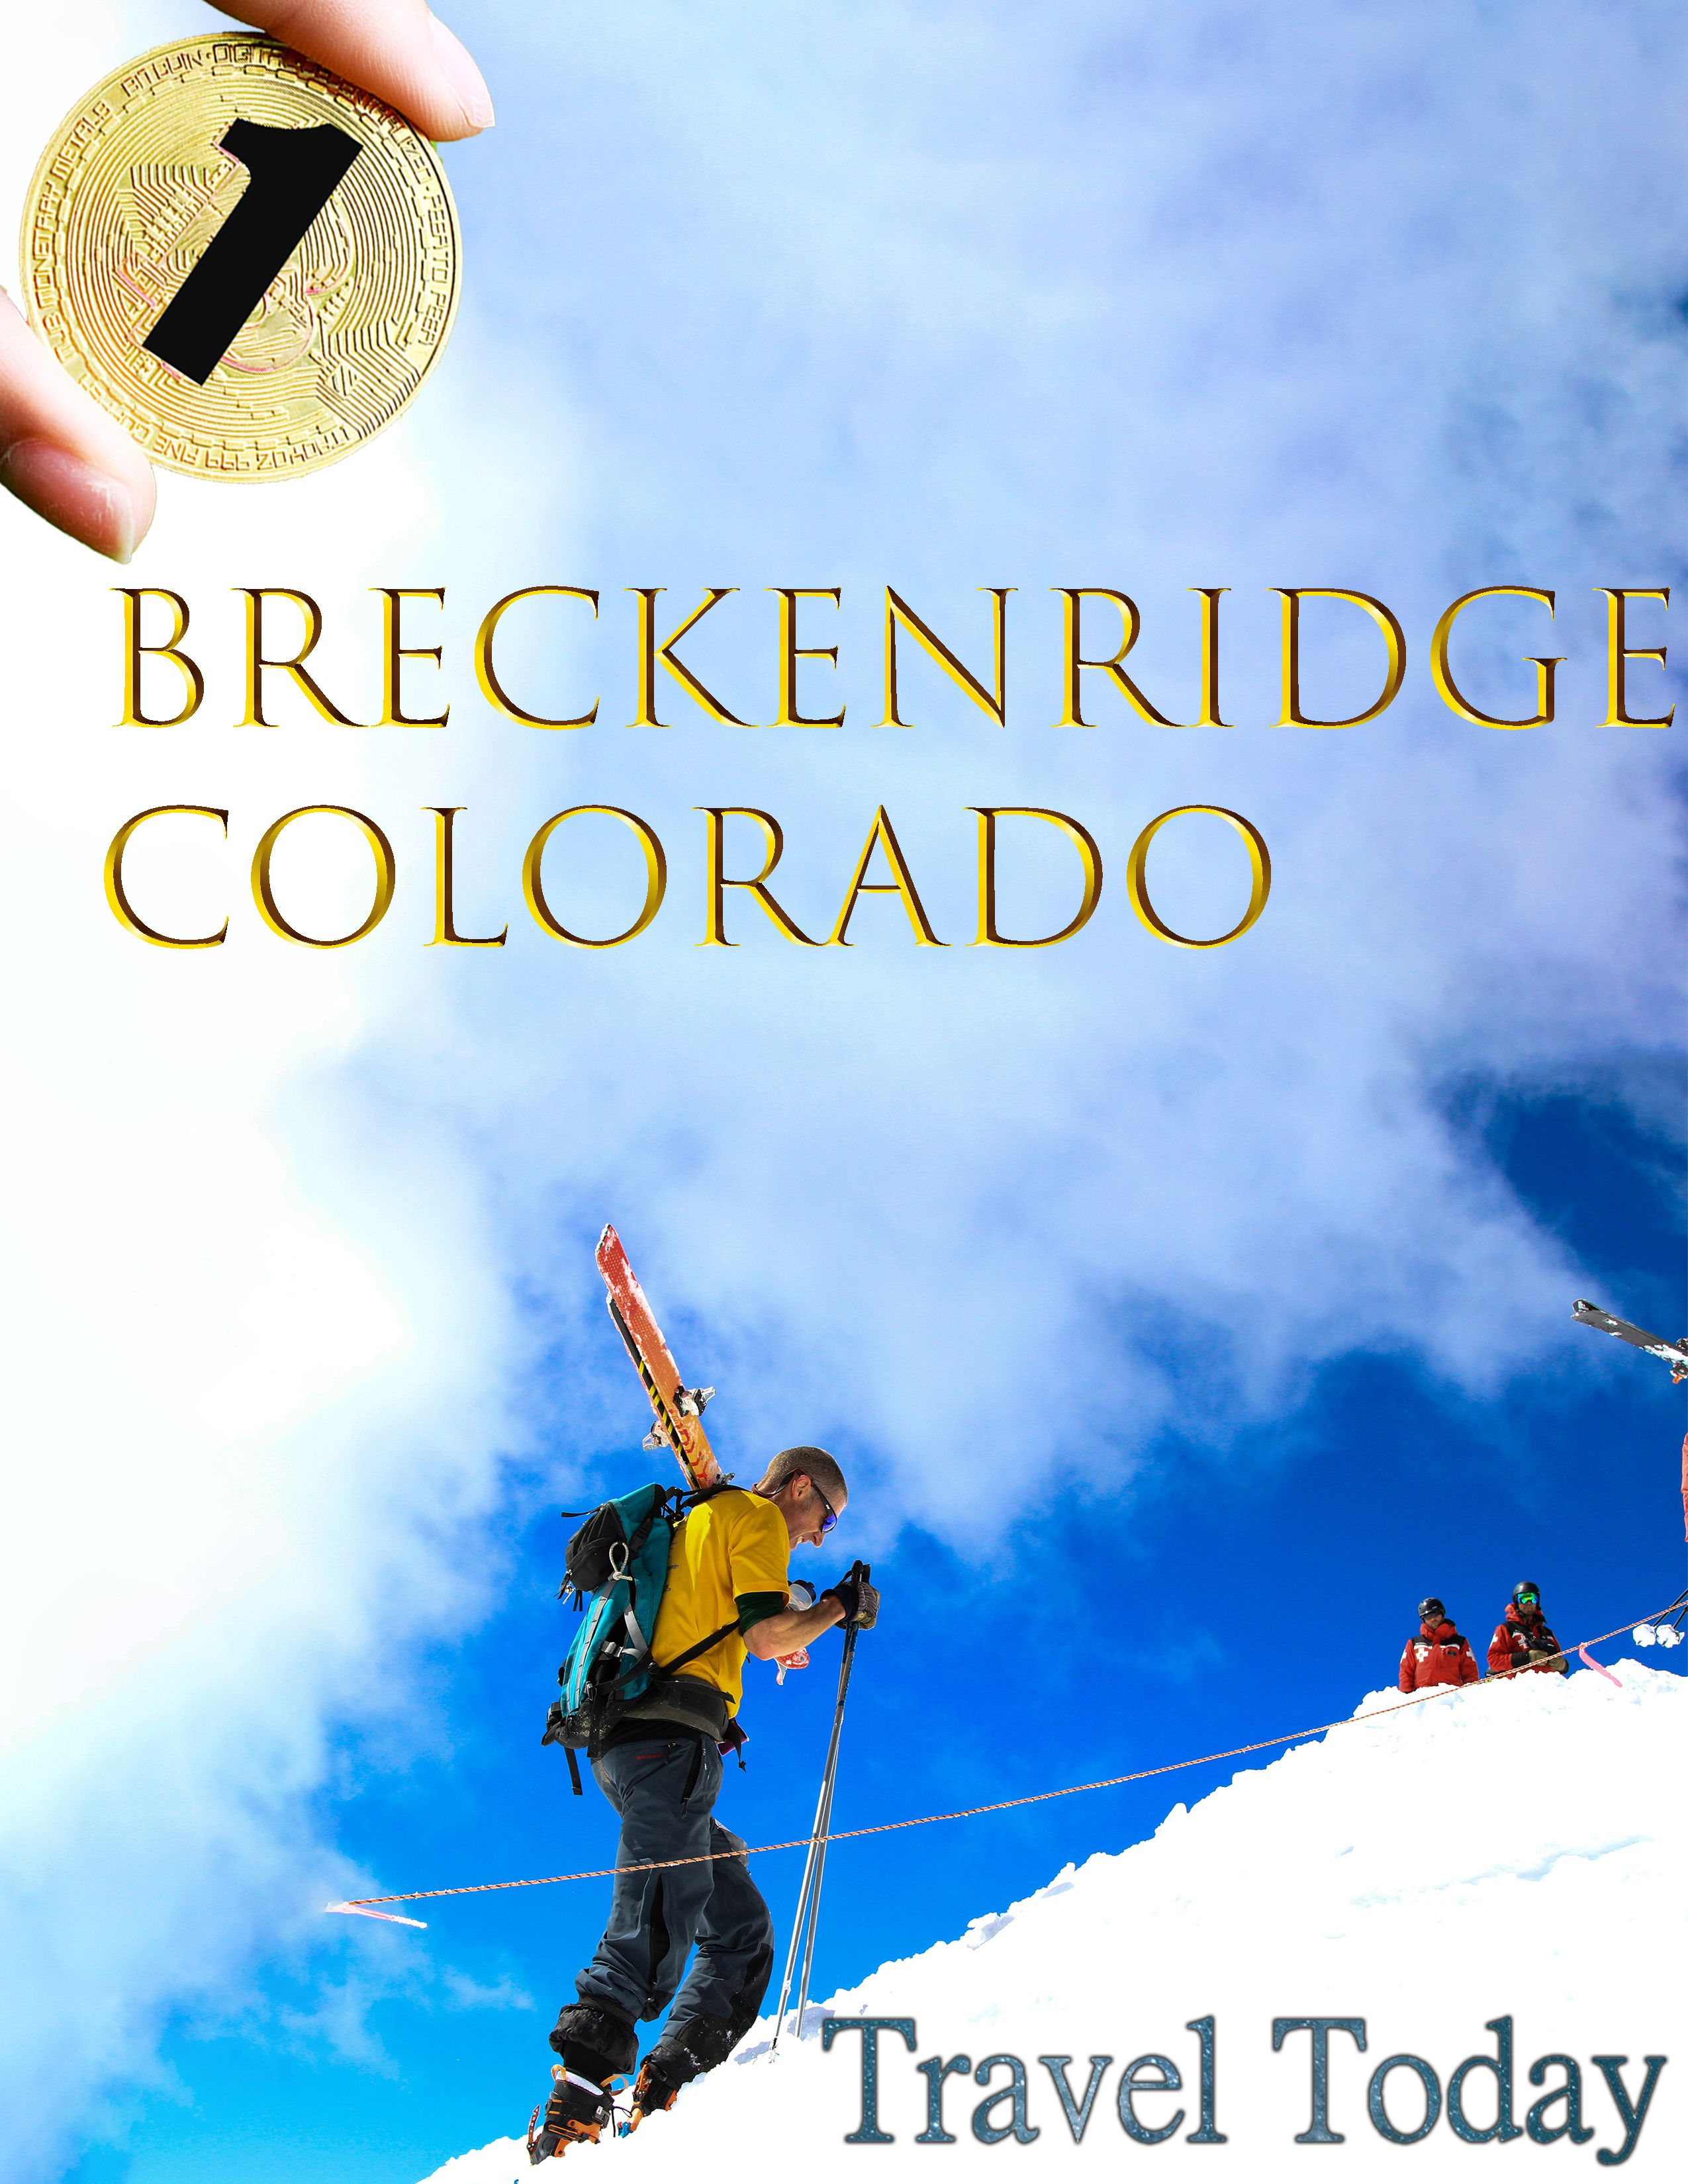 Breckenridge is absolutely your best winter vacation